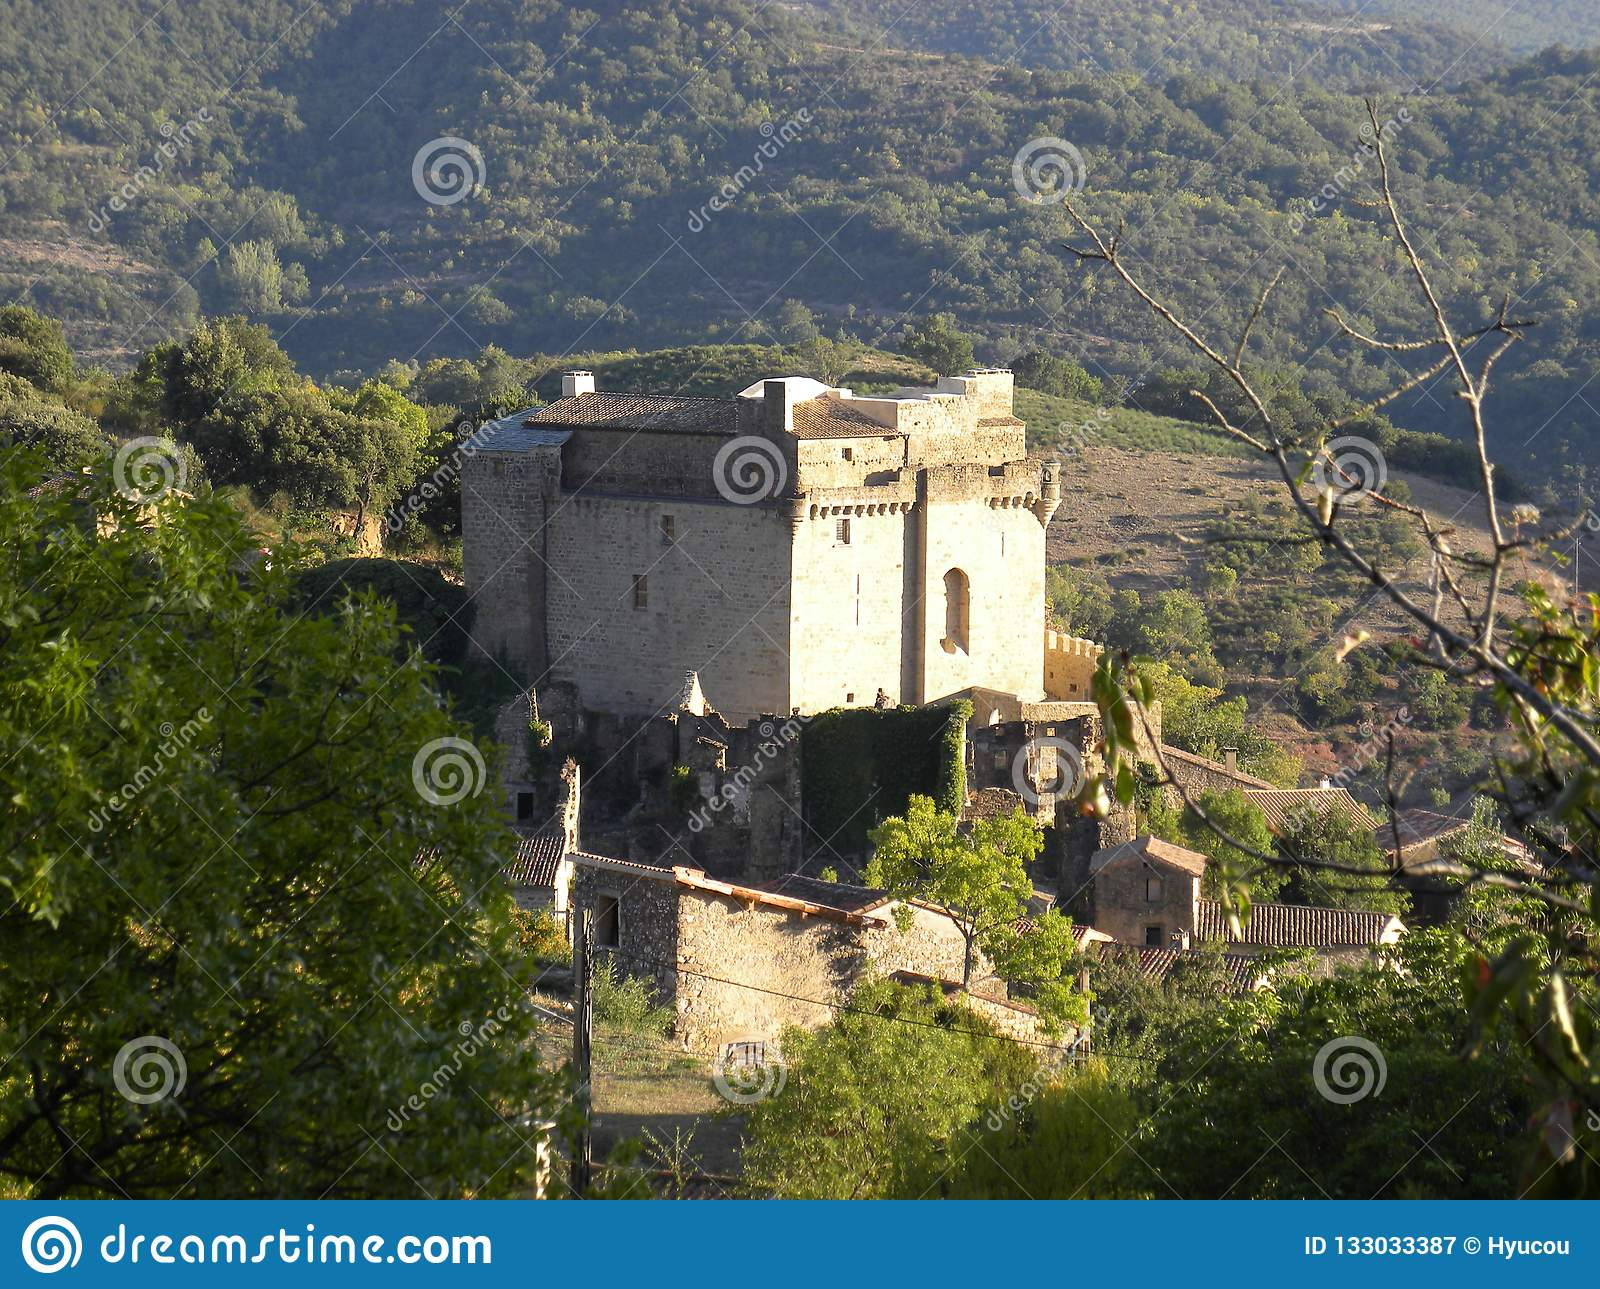 Chateau de dio, a castle in the herault department, france